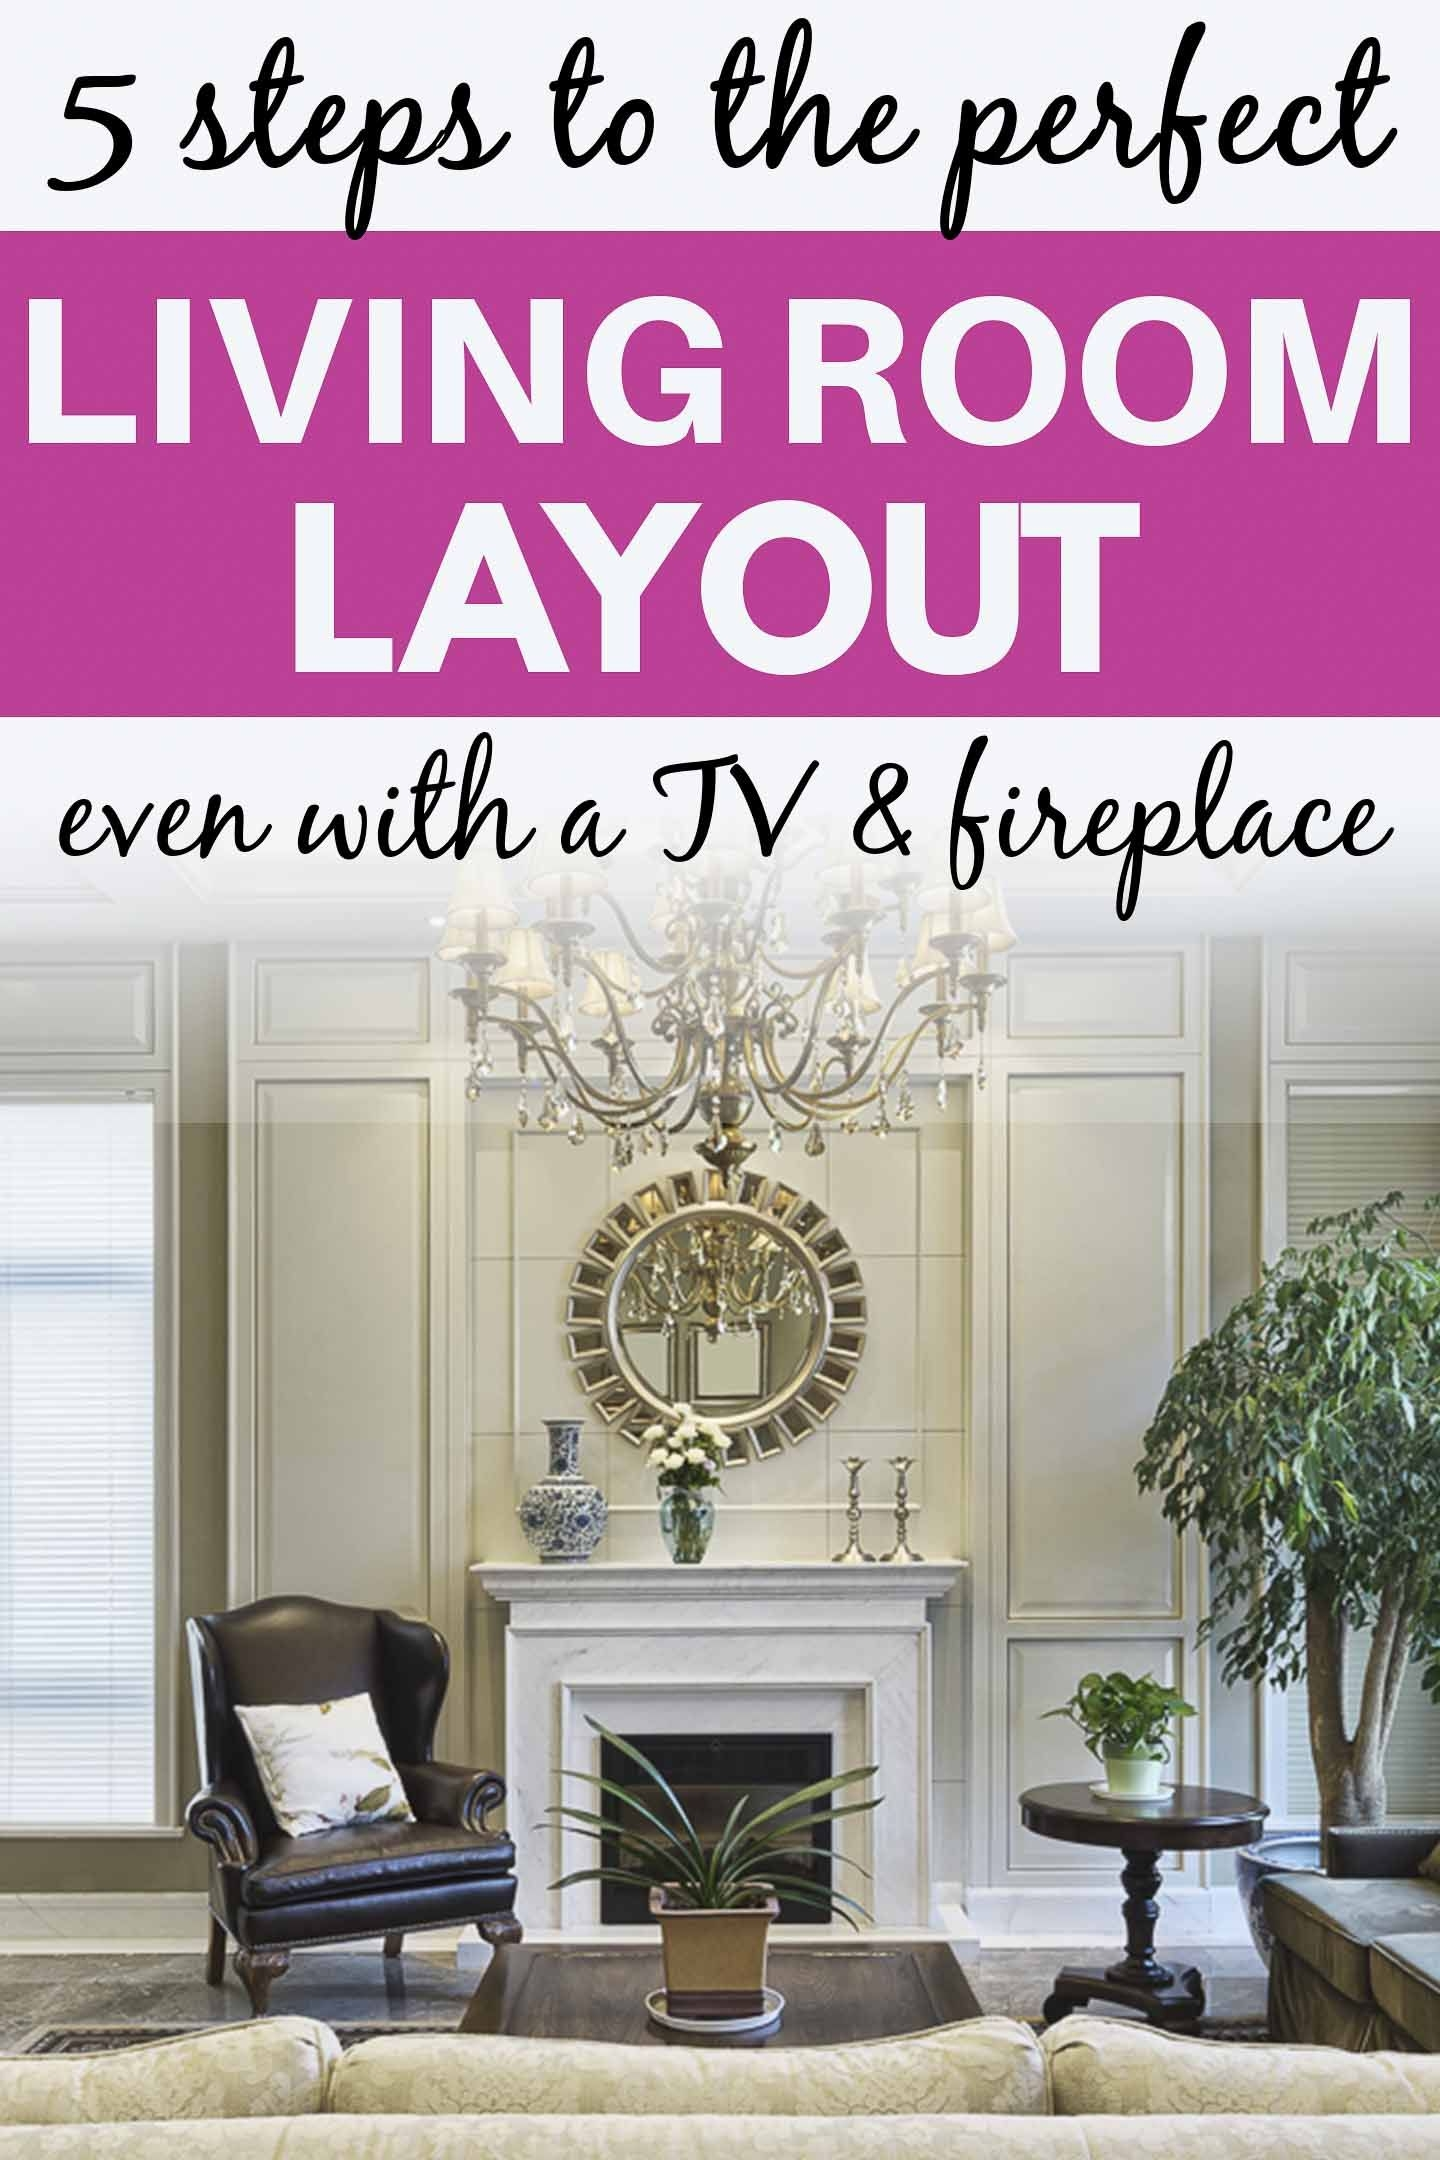 Comely Awkward Living Room Layout Ideas On Stunning Living Room Layouts and Furniture Arrangement Tips On Awkward Living Room Layout Ideas